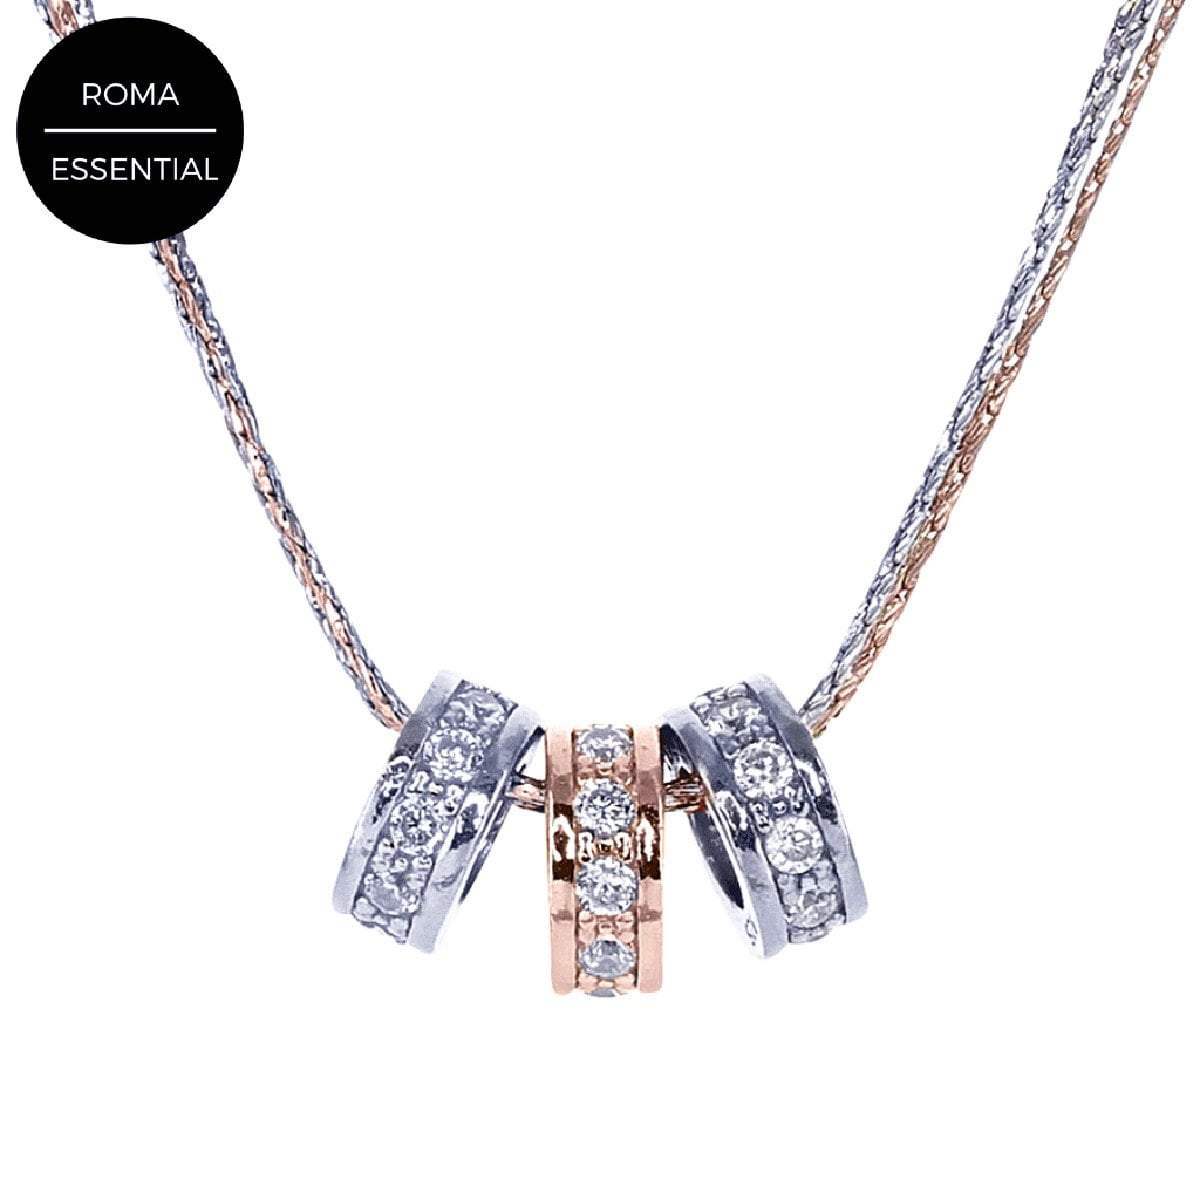 Eros Milano Necklaces Default Title / Silver / Rose Radiance 3-Ring Necklace with Brilliant CZ Accents in Rhodium and Rose Gold